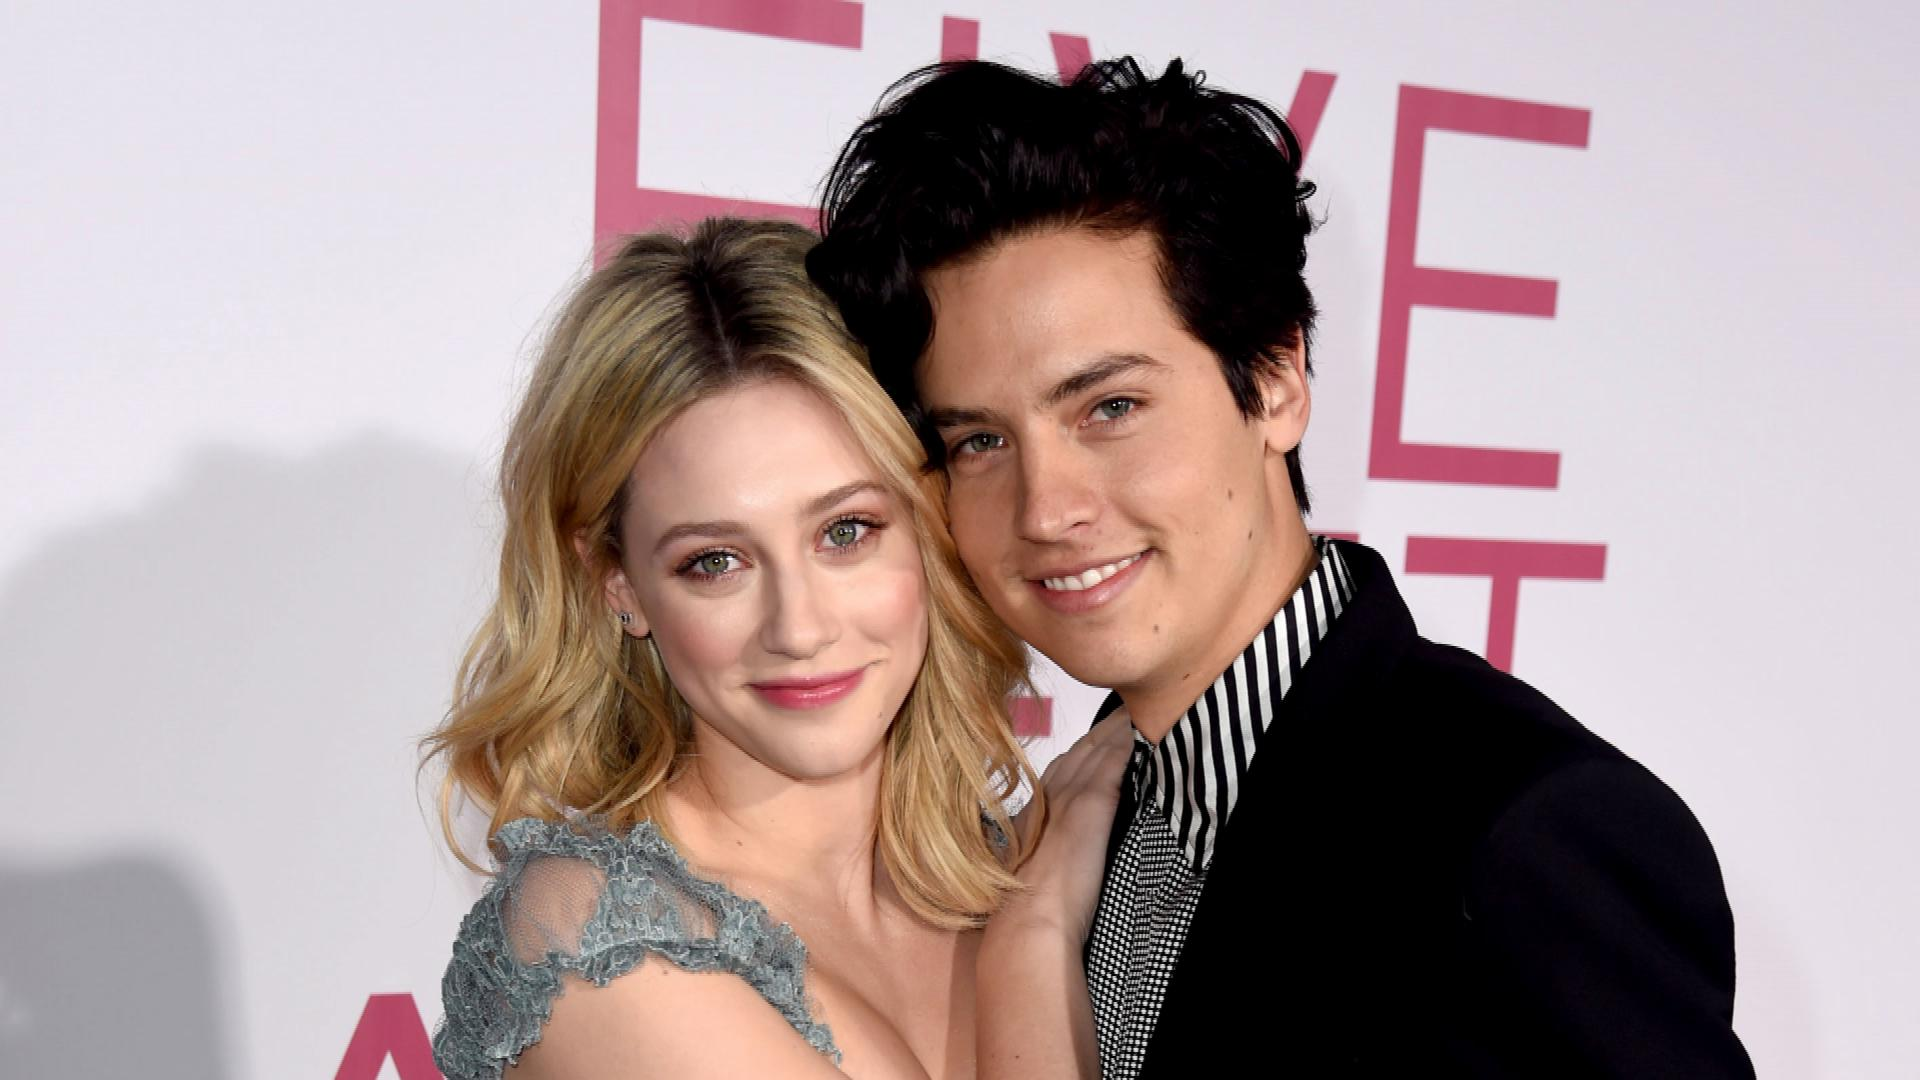 Lili Reinhart Shares 'Sappy' Love Poem for Cole Sprouse After Reports of Split